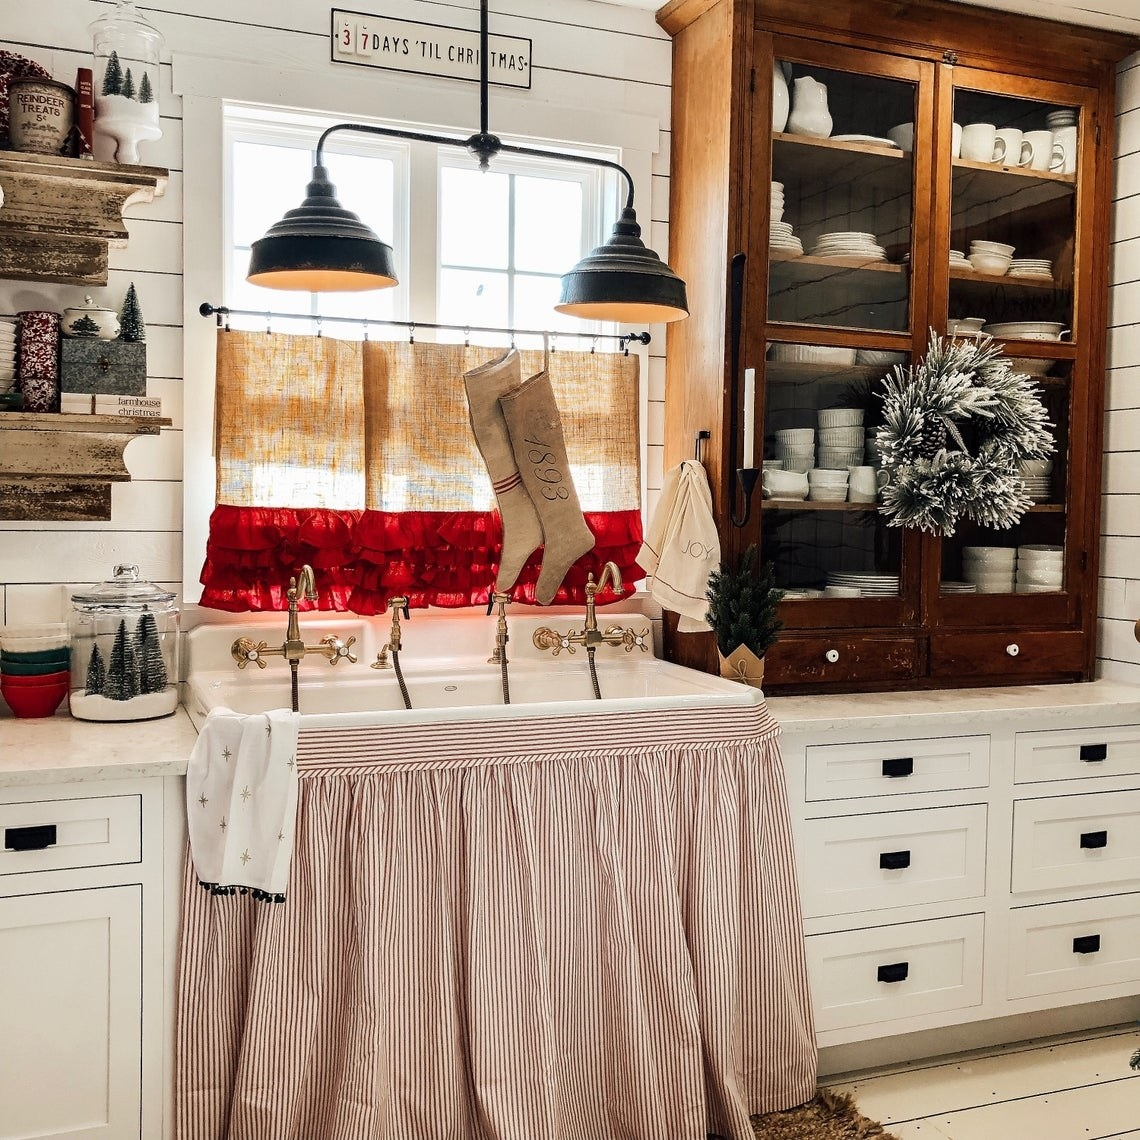 Red and white striped kitchen sink skirt in a festive kitchen